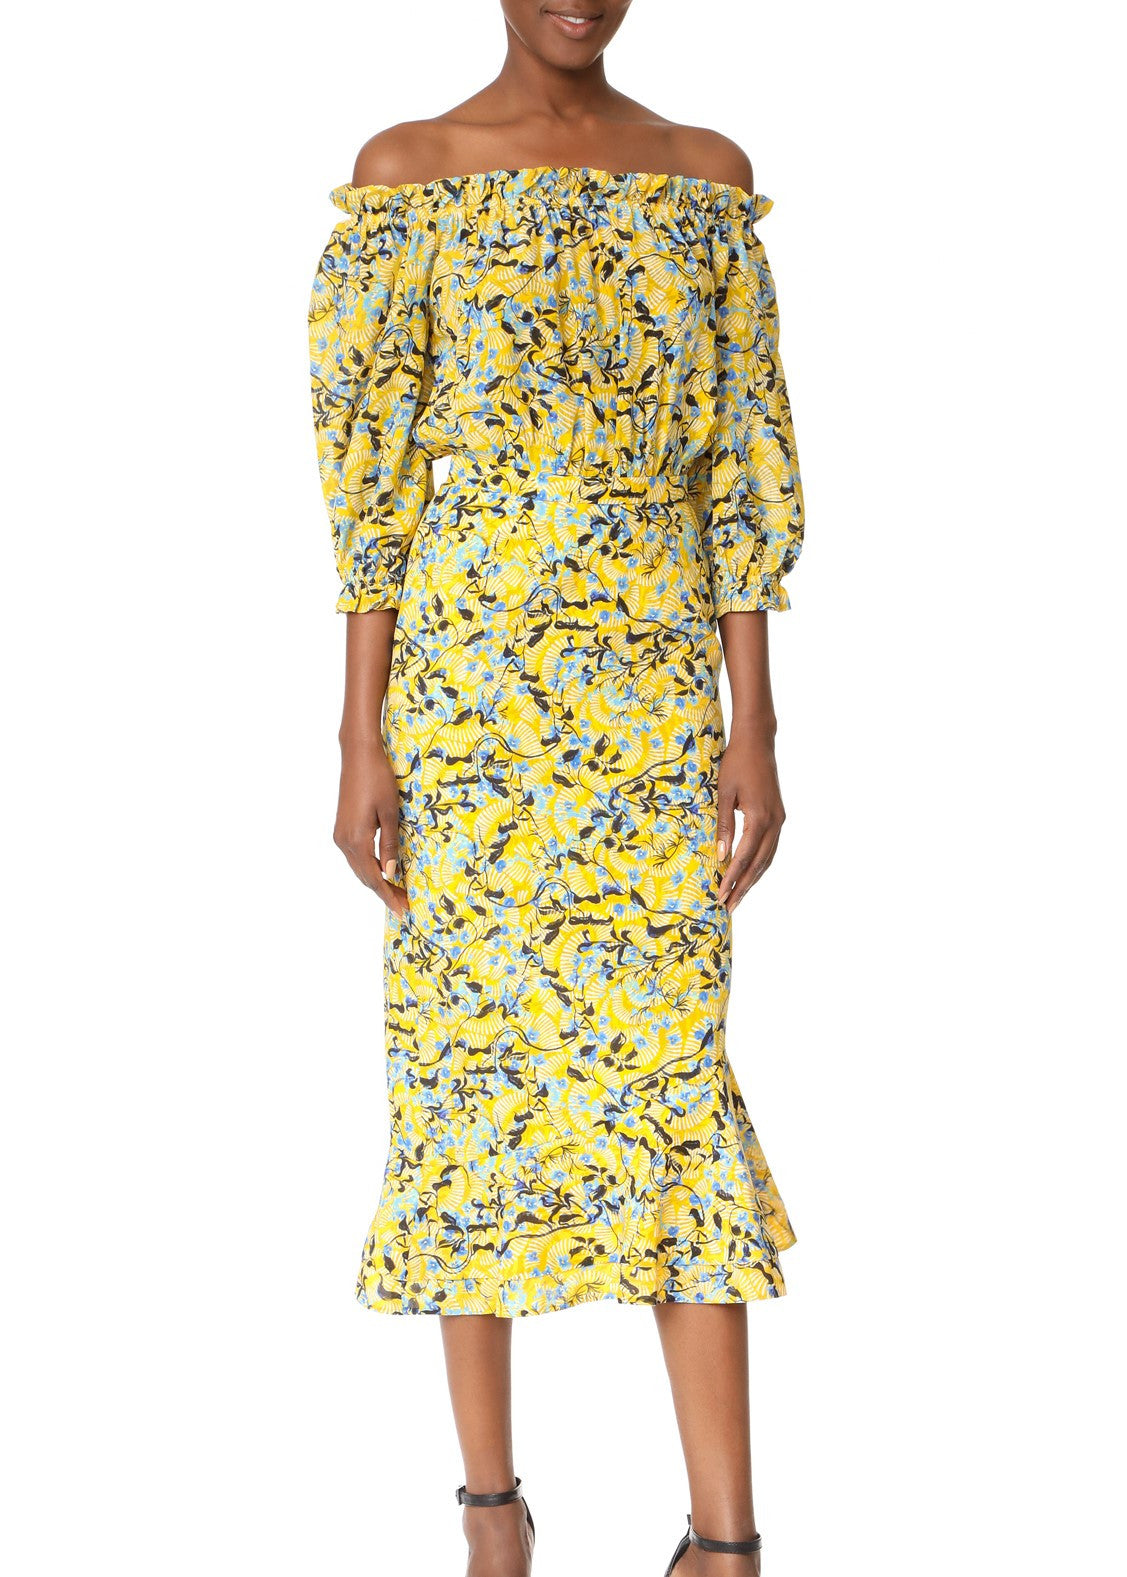 Saloni grace dress sundance